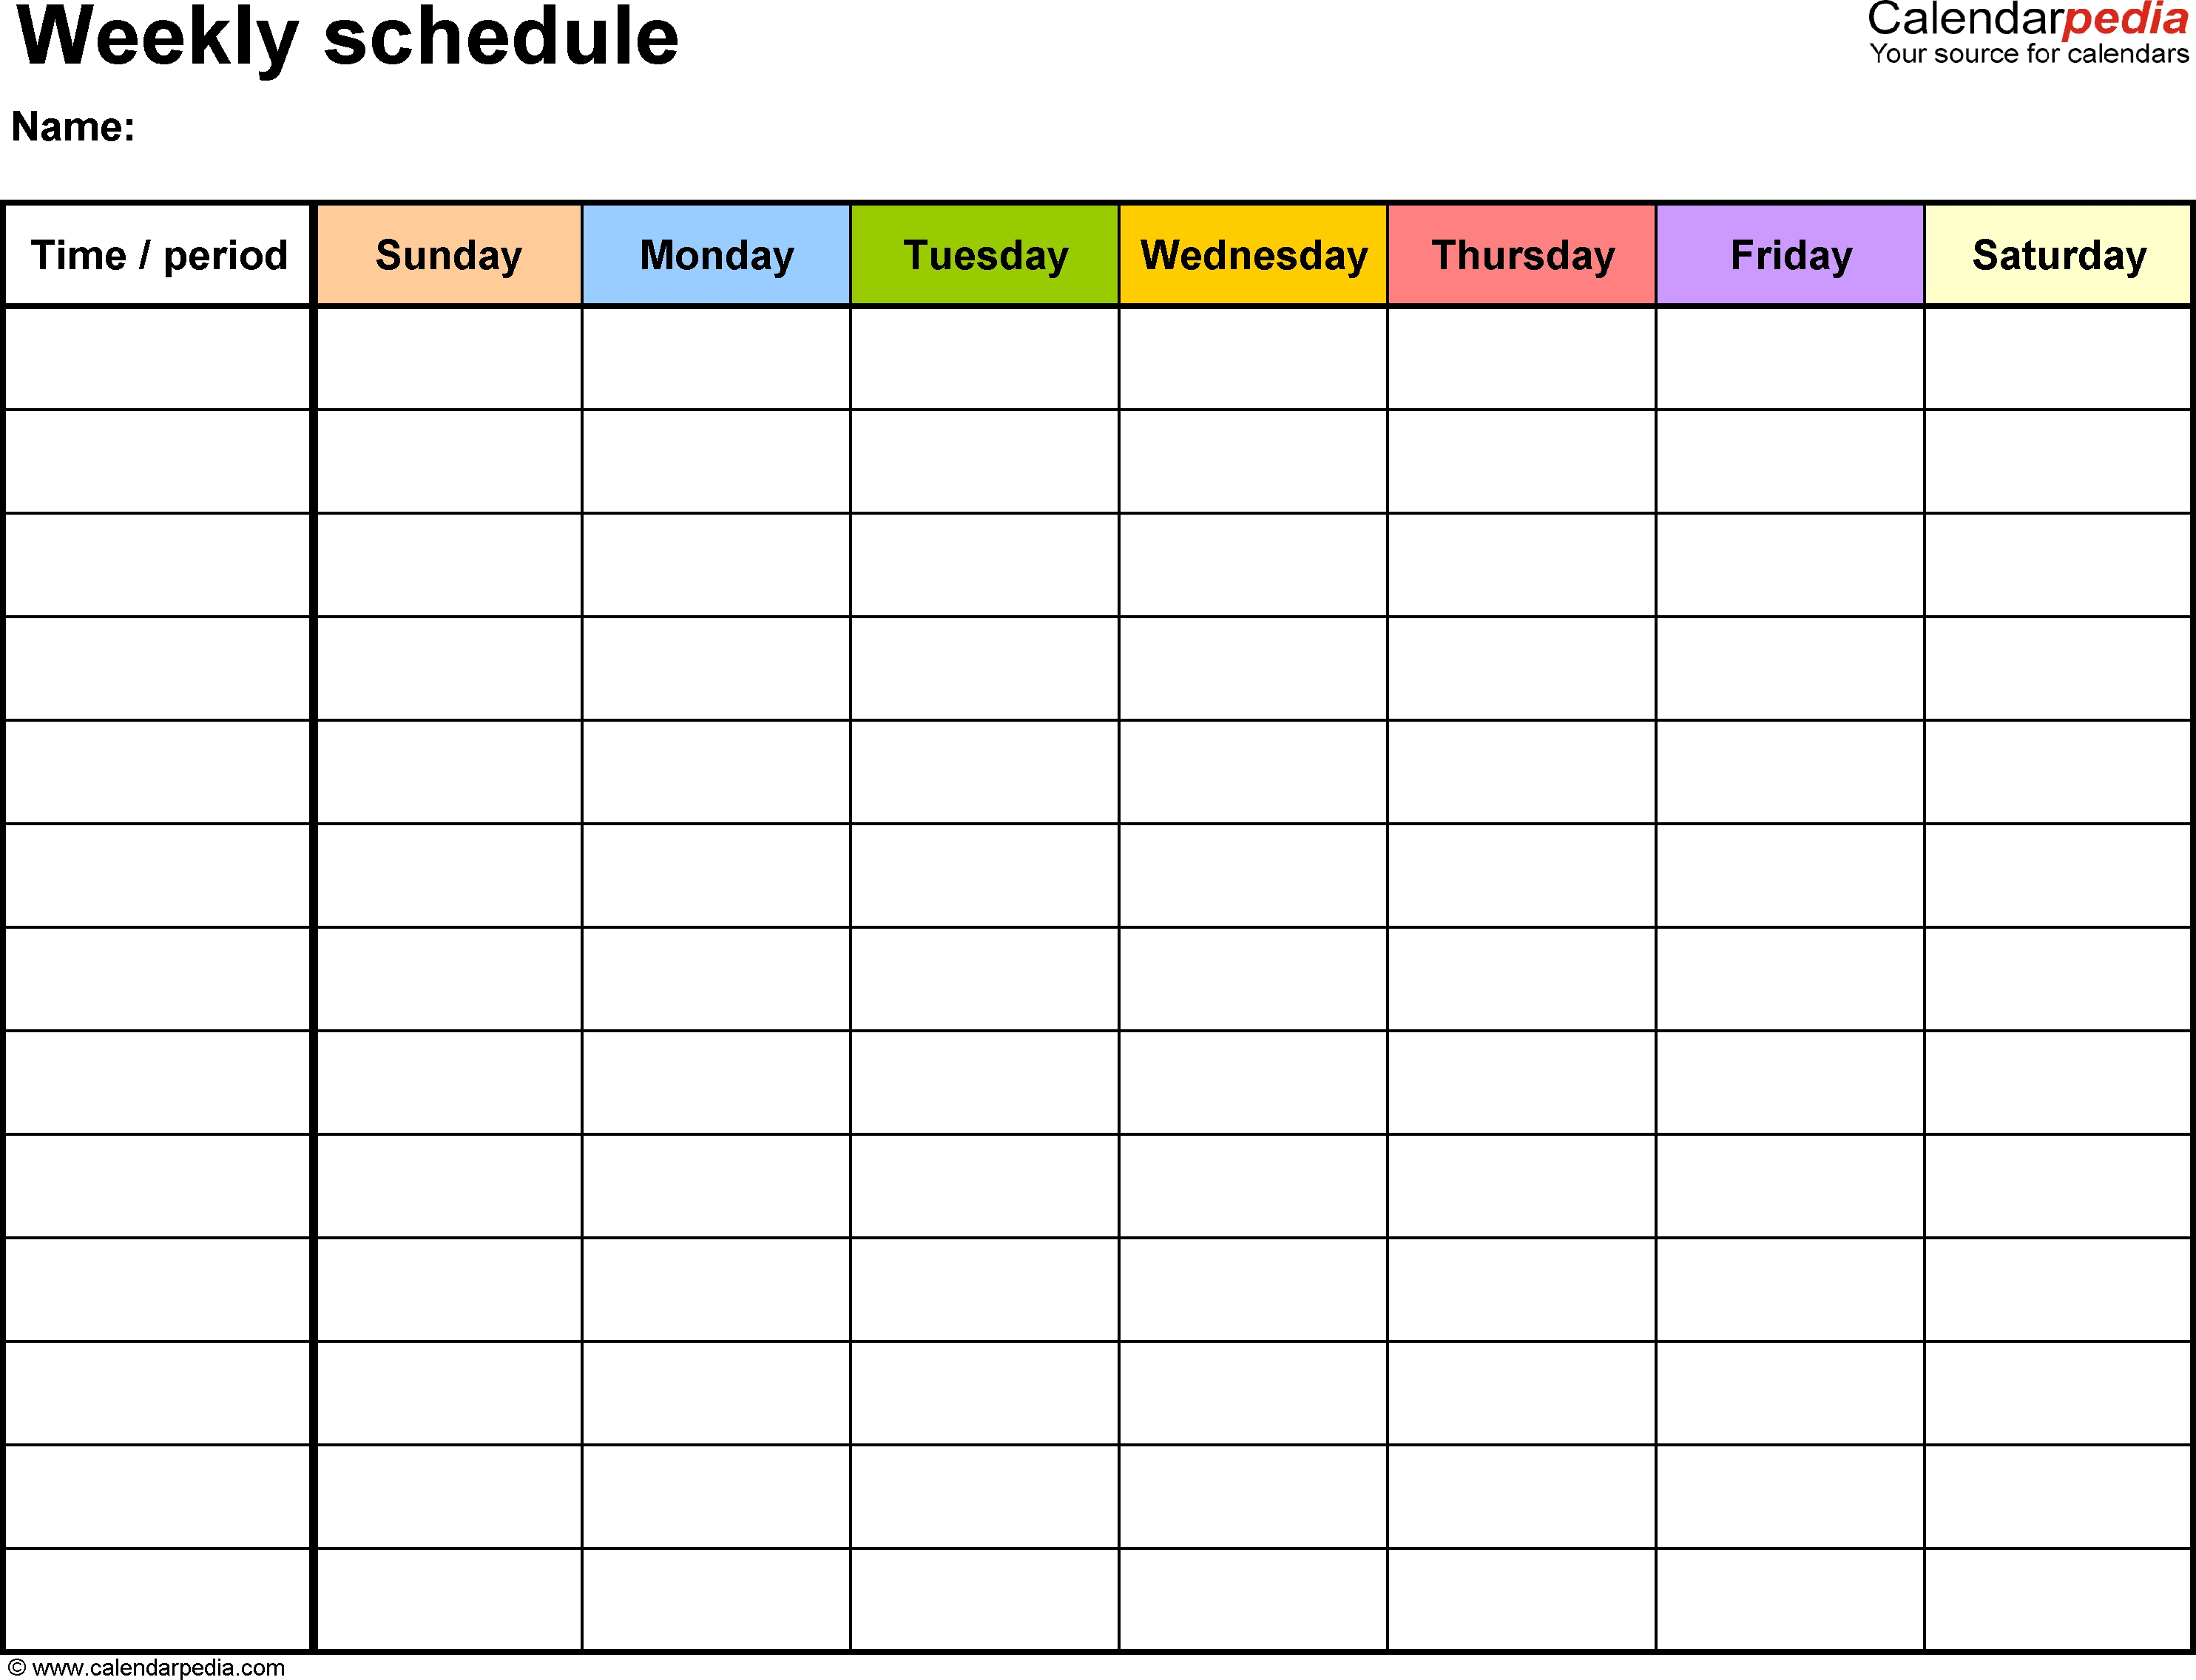 Weekly Schedule Template For Word Version 13: Landscape, 1 Page intended for Printable Seven Day Calendar Print Out